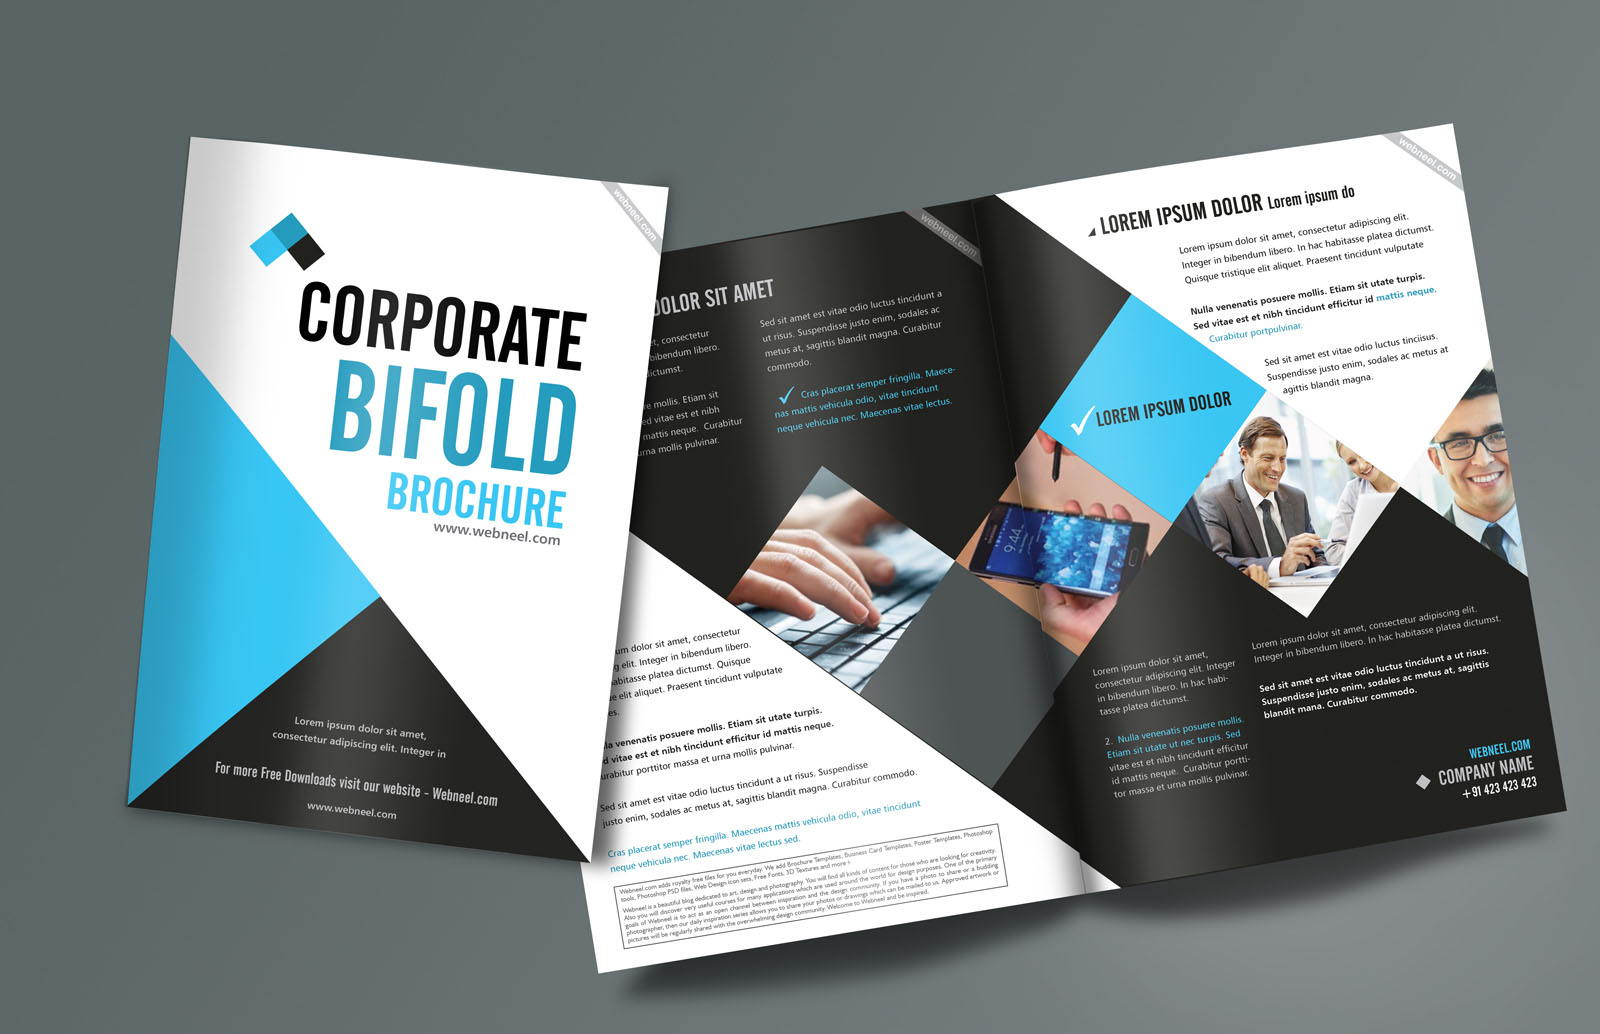 architecture brochure templates - corporate bifold brochure design templates freedownload